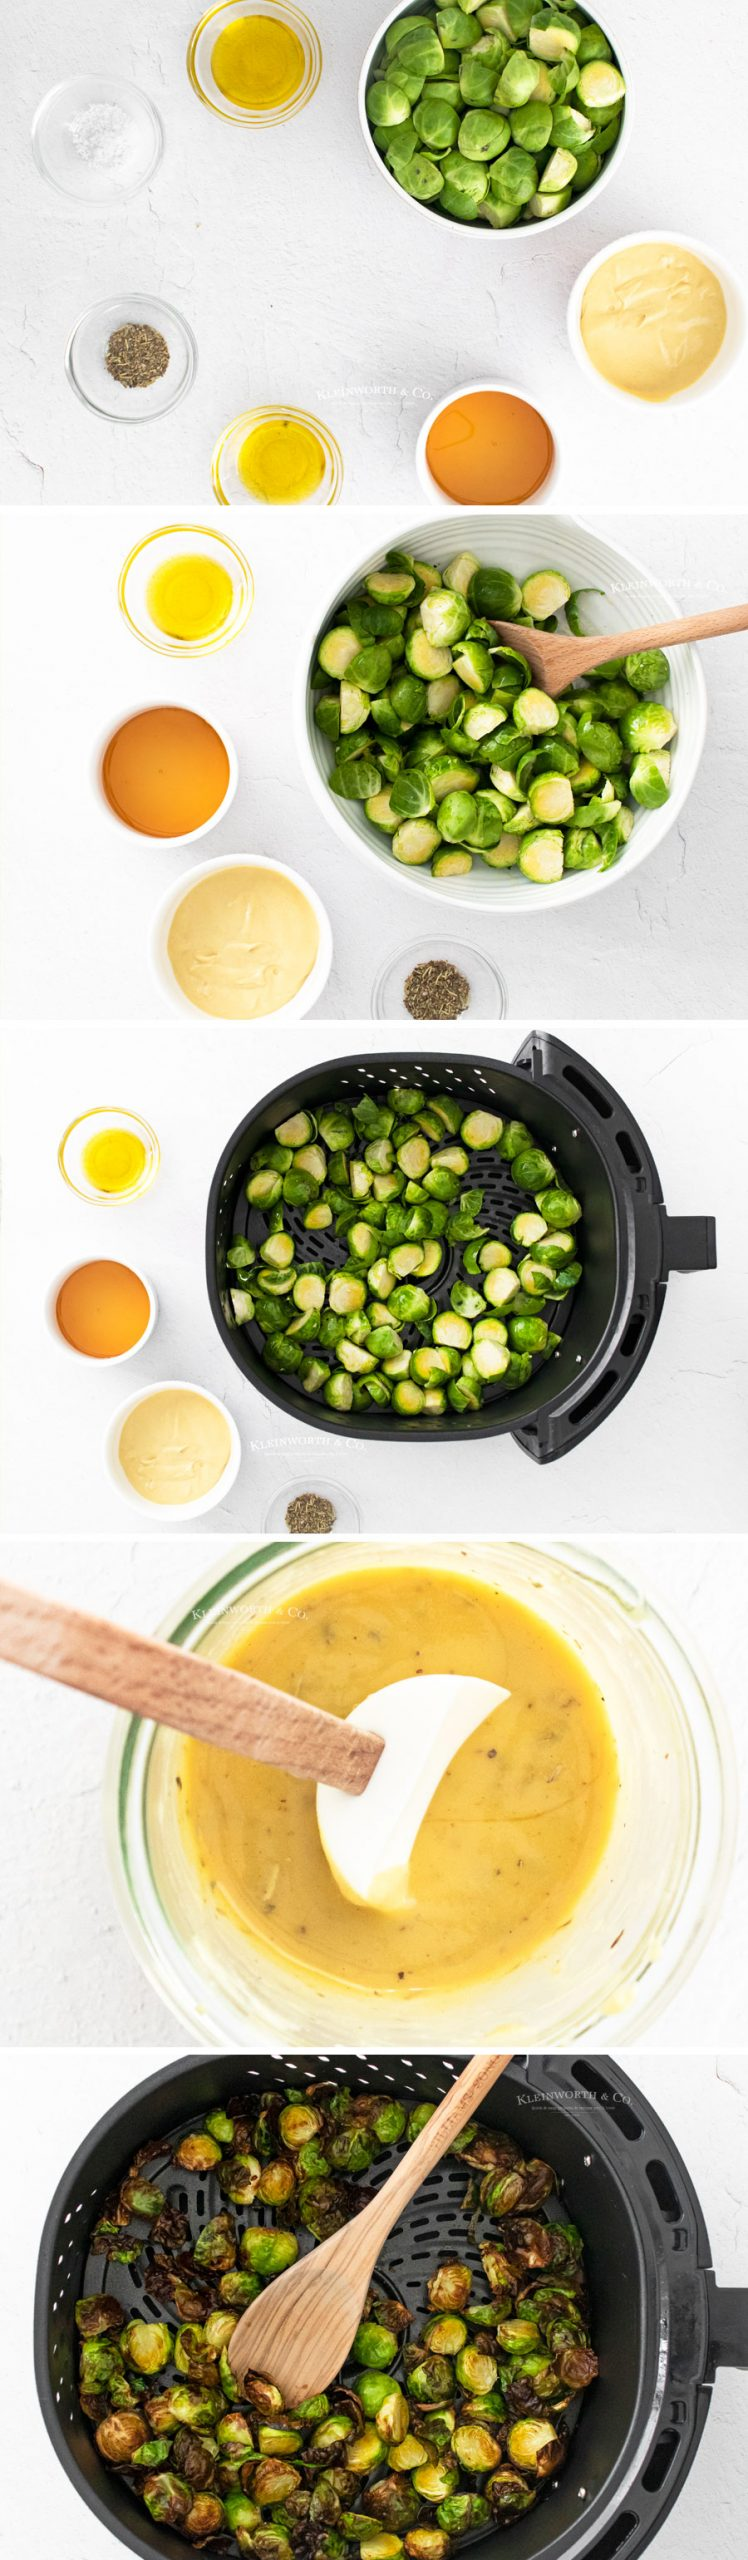 how to make Air Fryer Brussel Sprouts